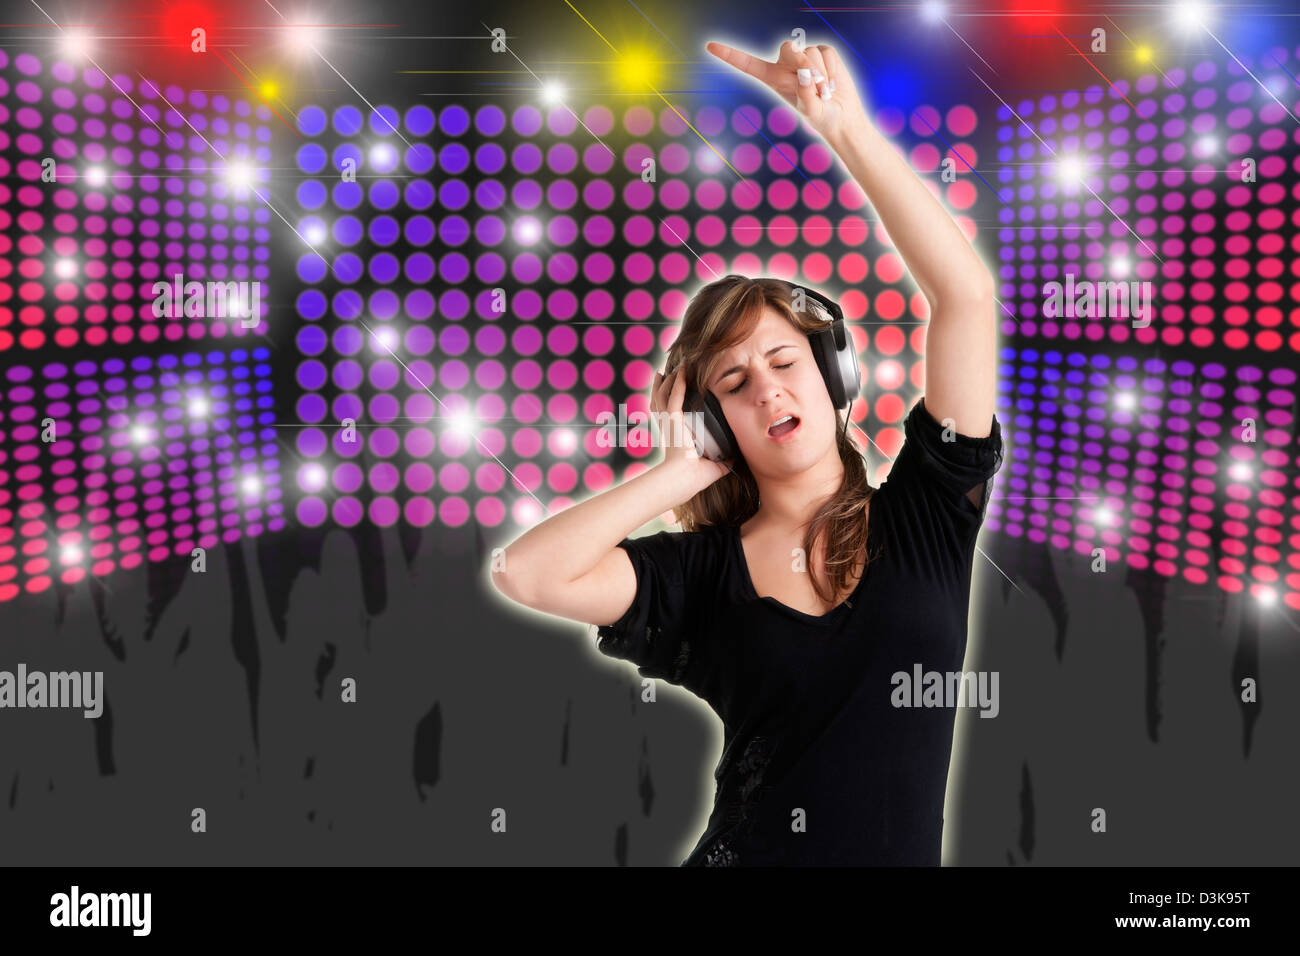 Woman dancing using headphones with disco lights in the background - Stock Image